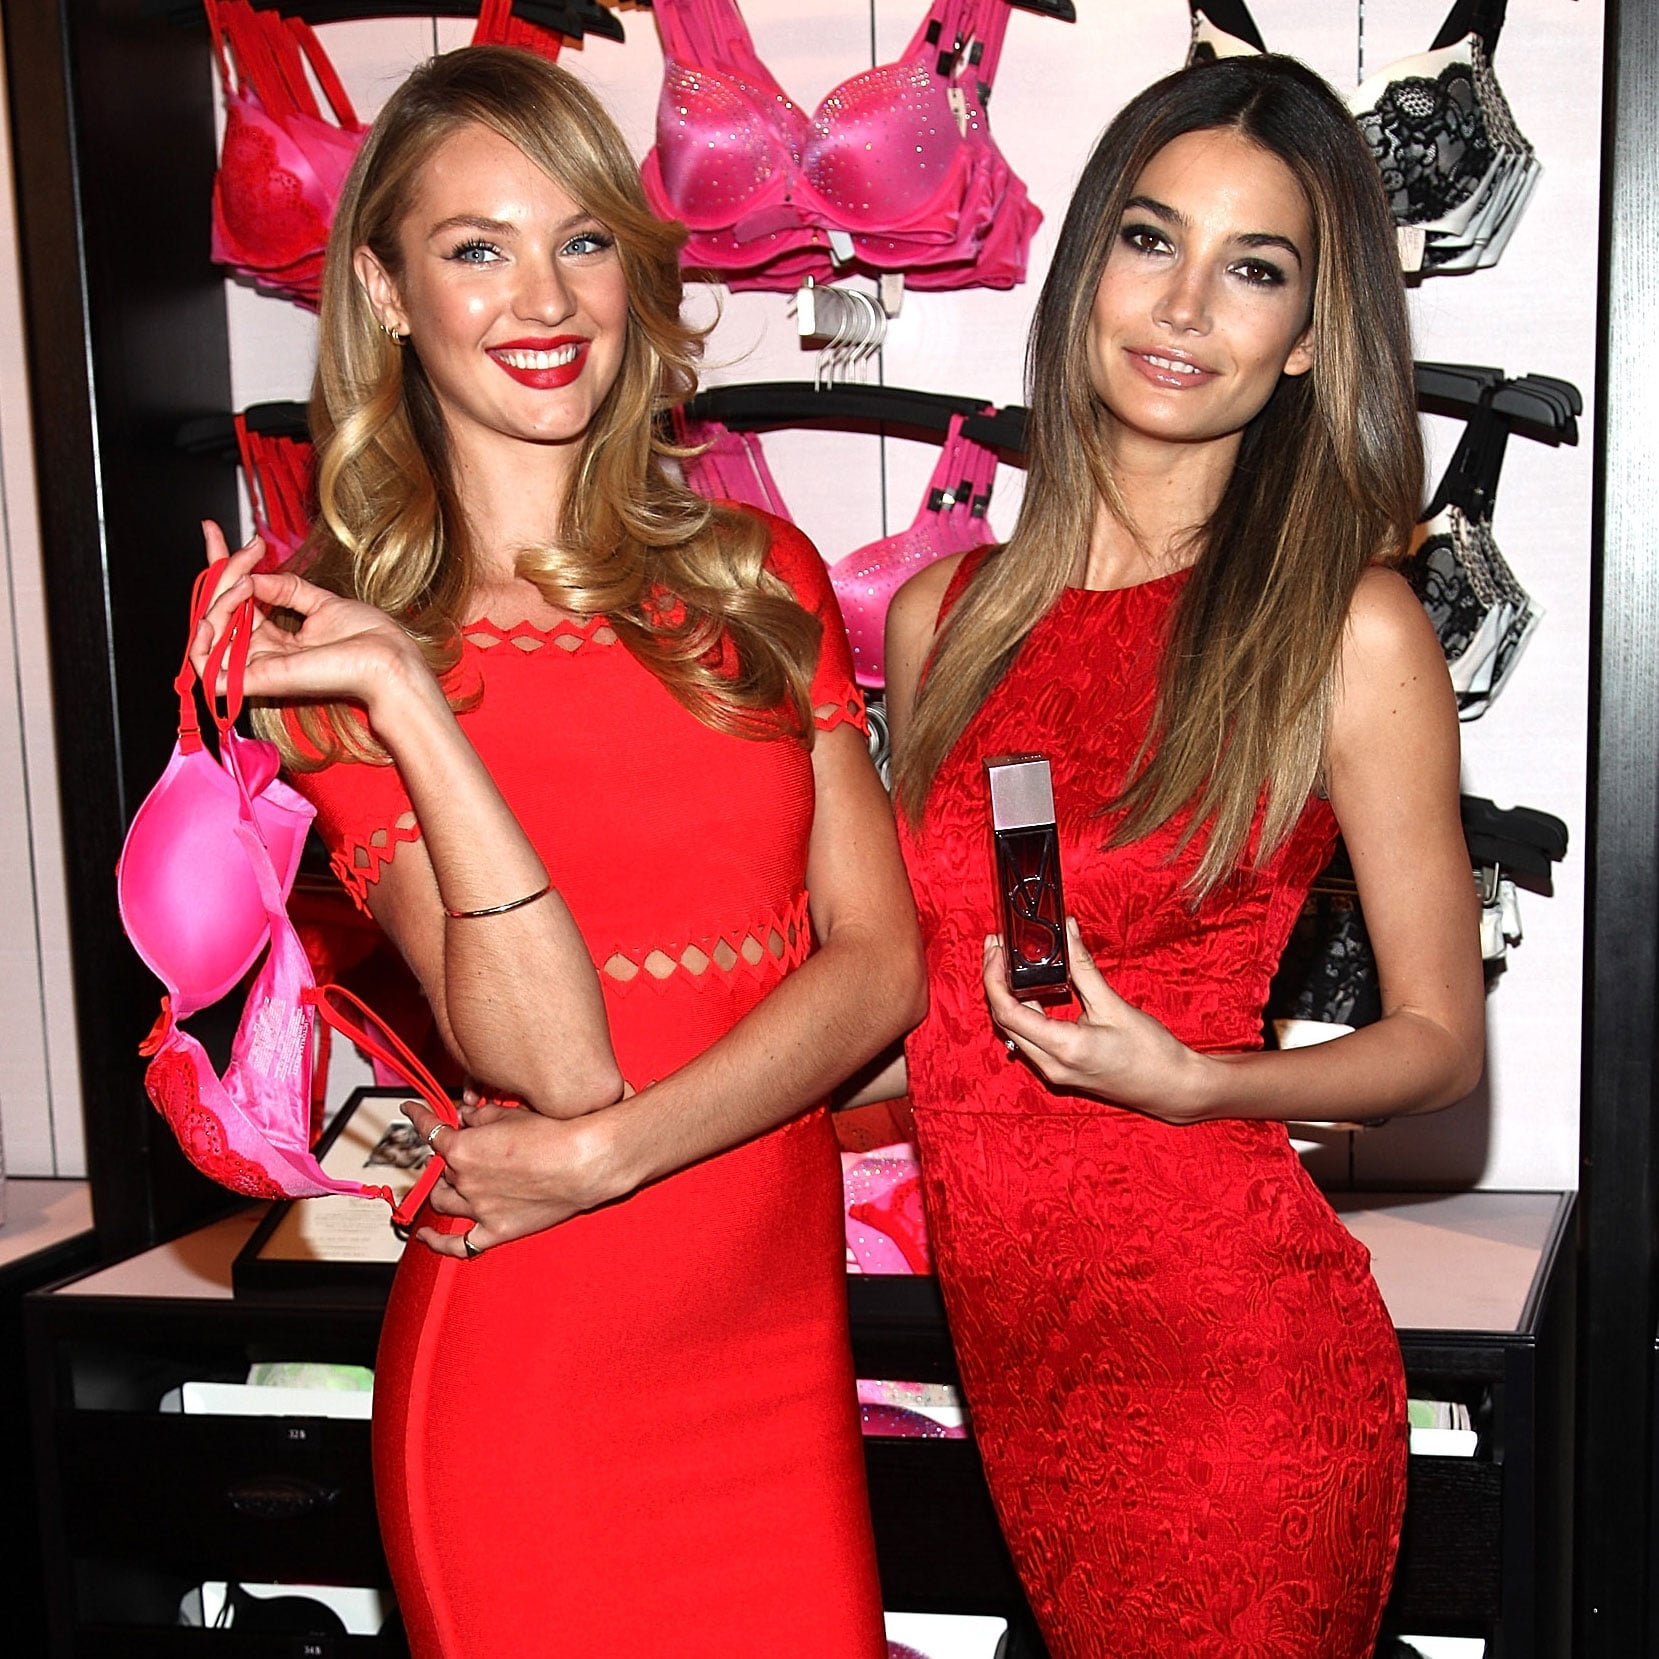 Candice Swanepoel And Lily Aldridge At Valentineu0027s Day Event | POPSUGAR  Celebrity